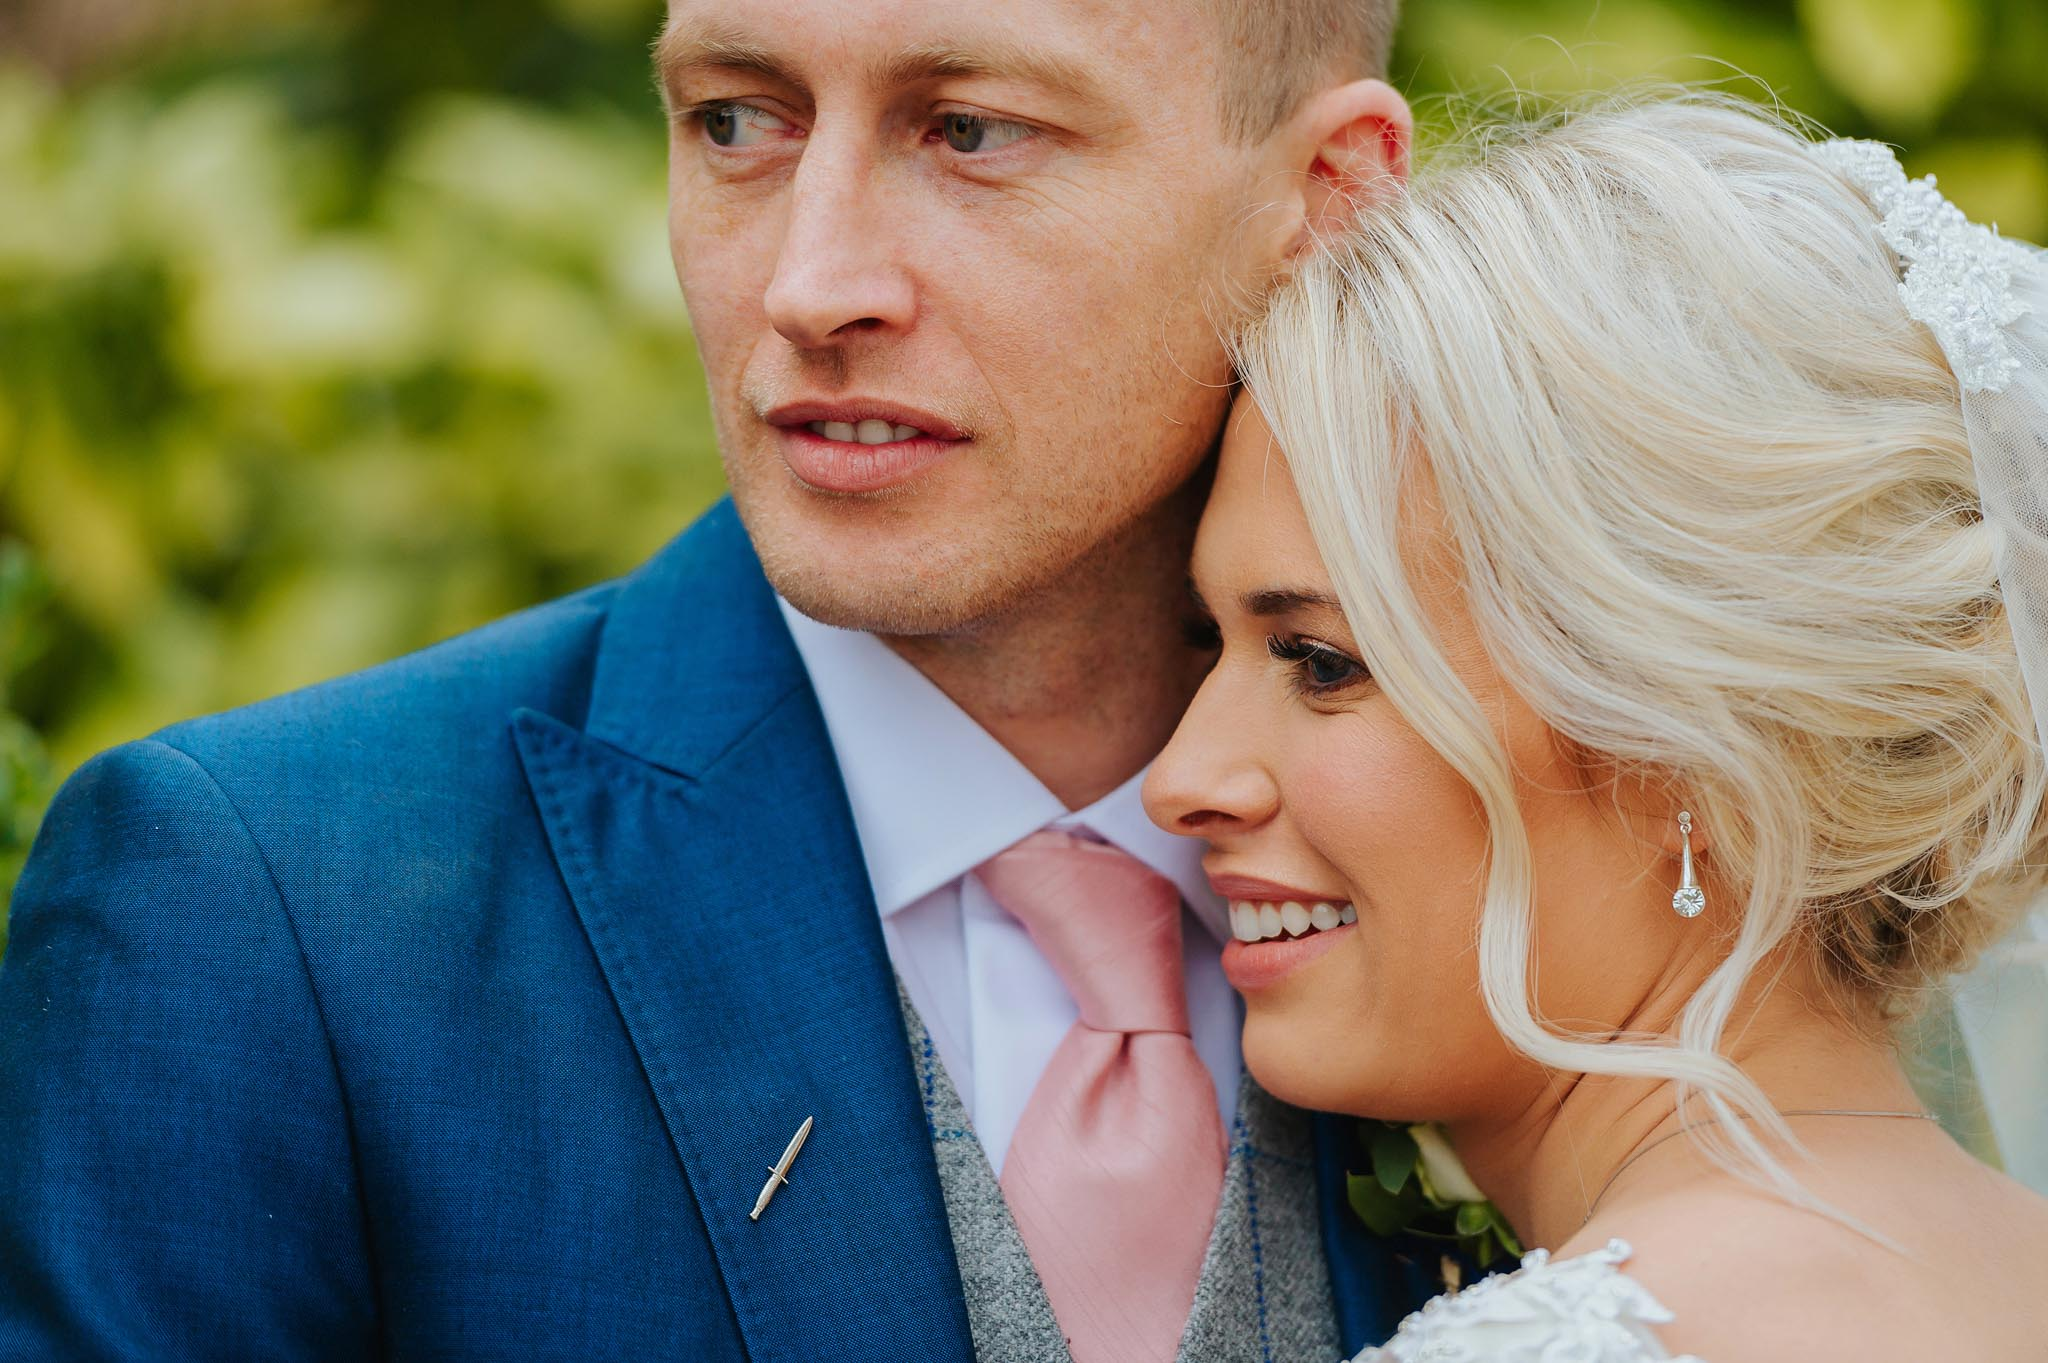 lemore manor wedding herefordshire 90 - Lemore Manor wedding, Herefordshire - West Midlands | Sadie + Ken